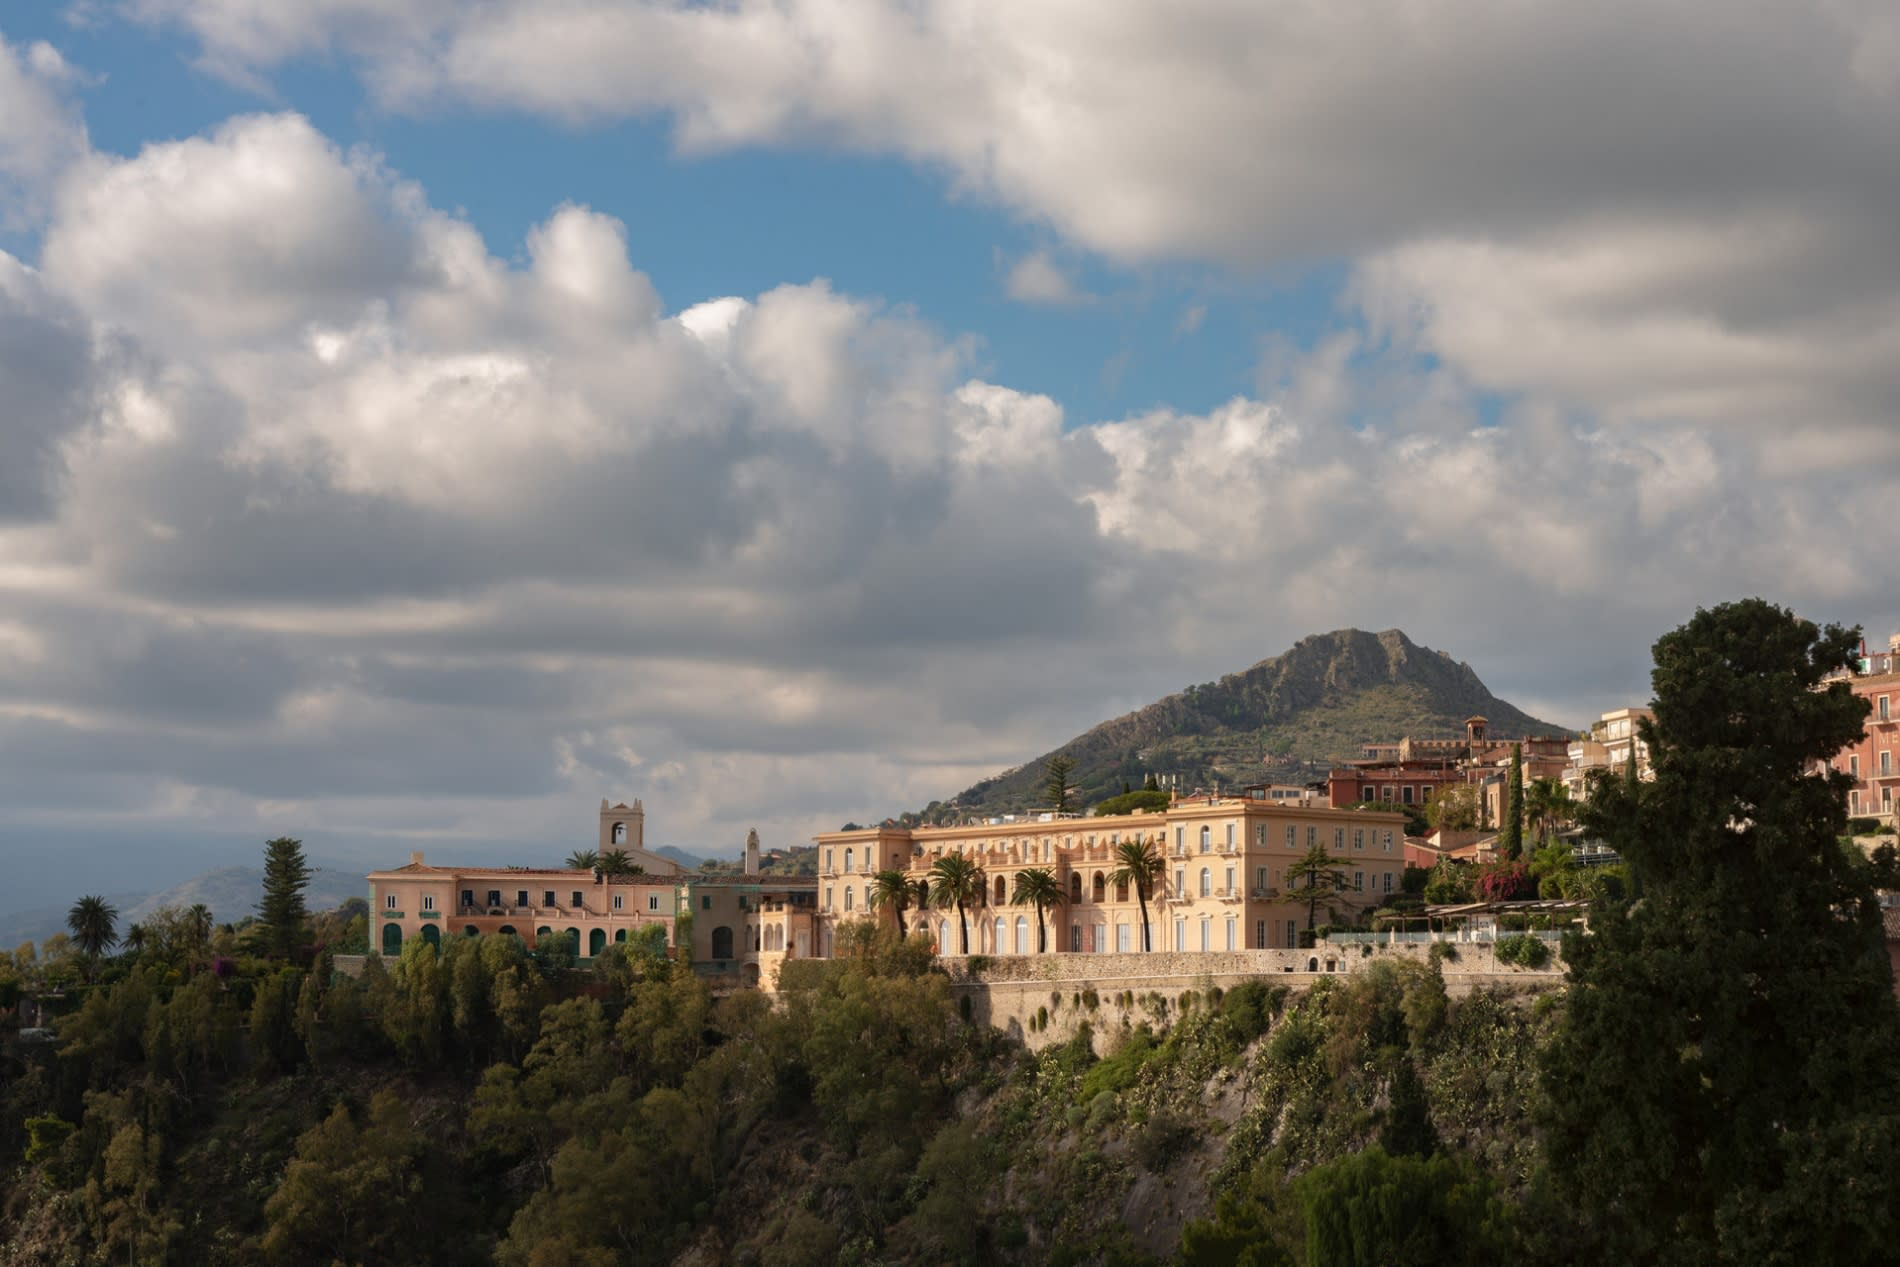 Legendary San Domenico Palace enters a new era, reopening as a Four Seasons Hotel this summer